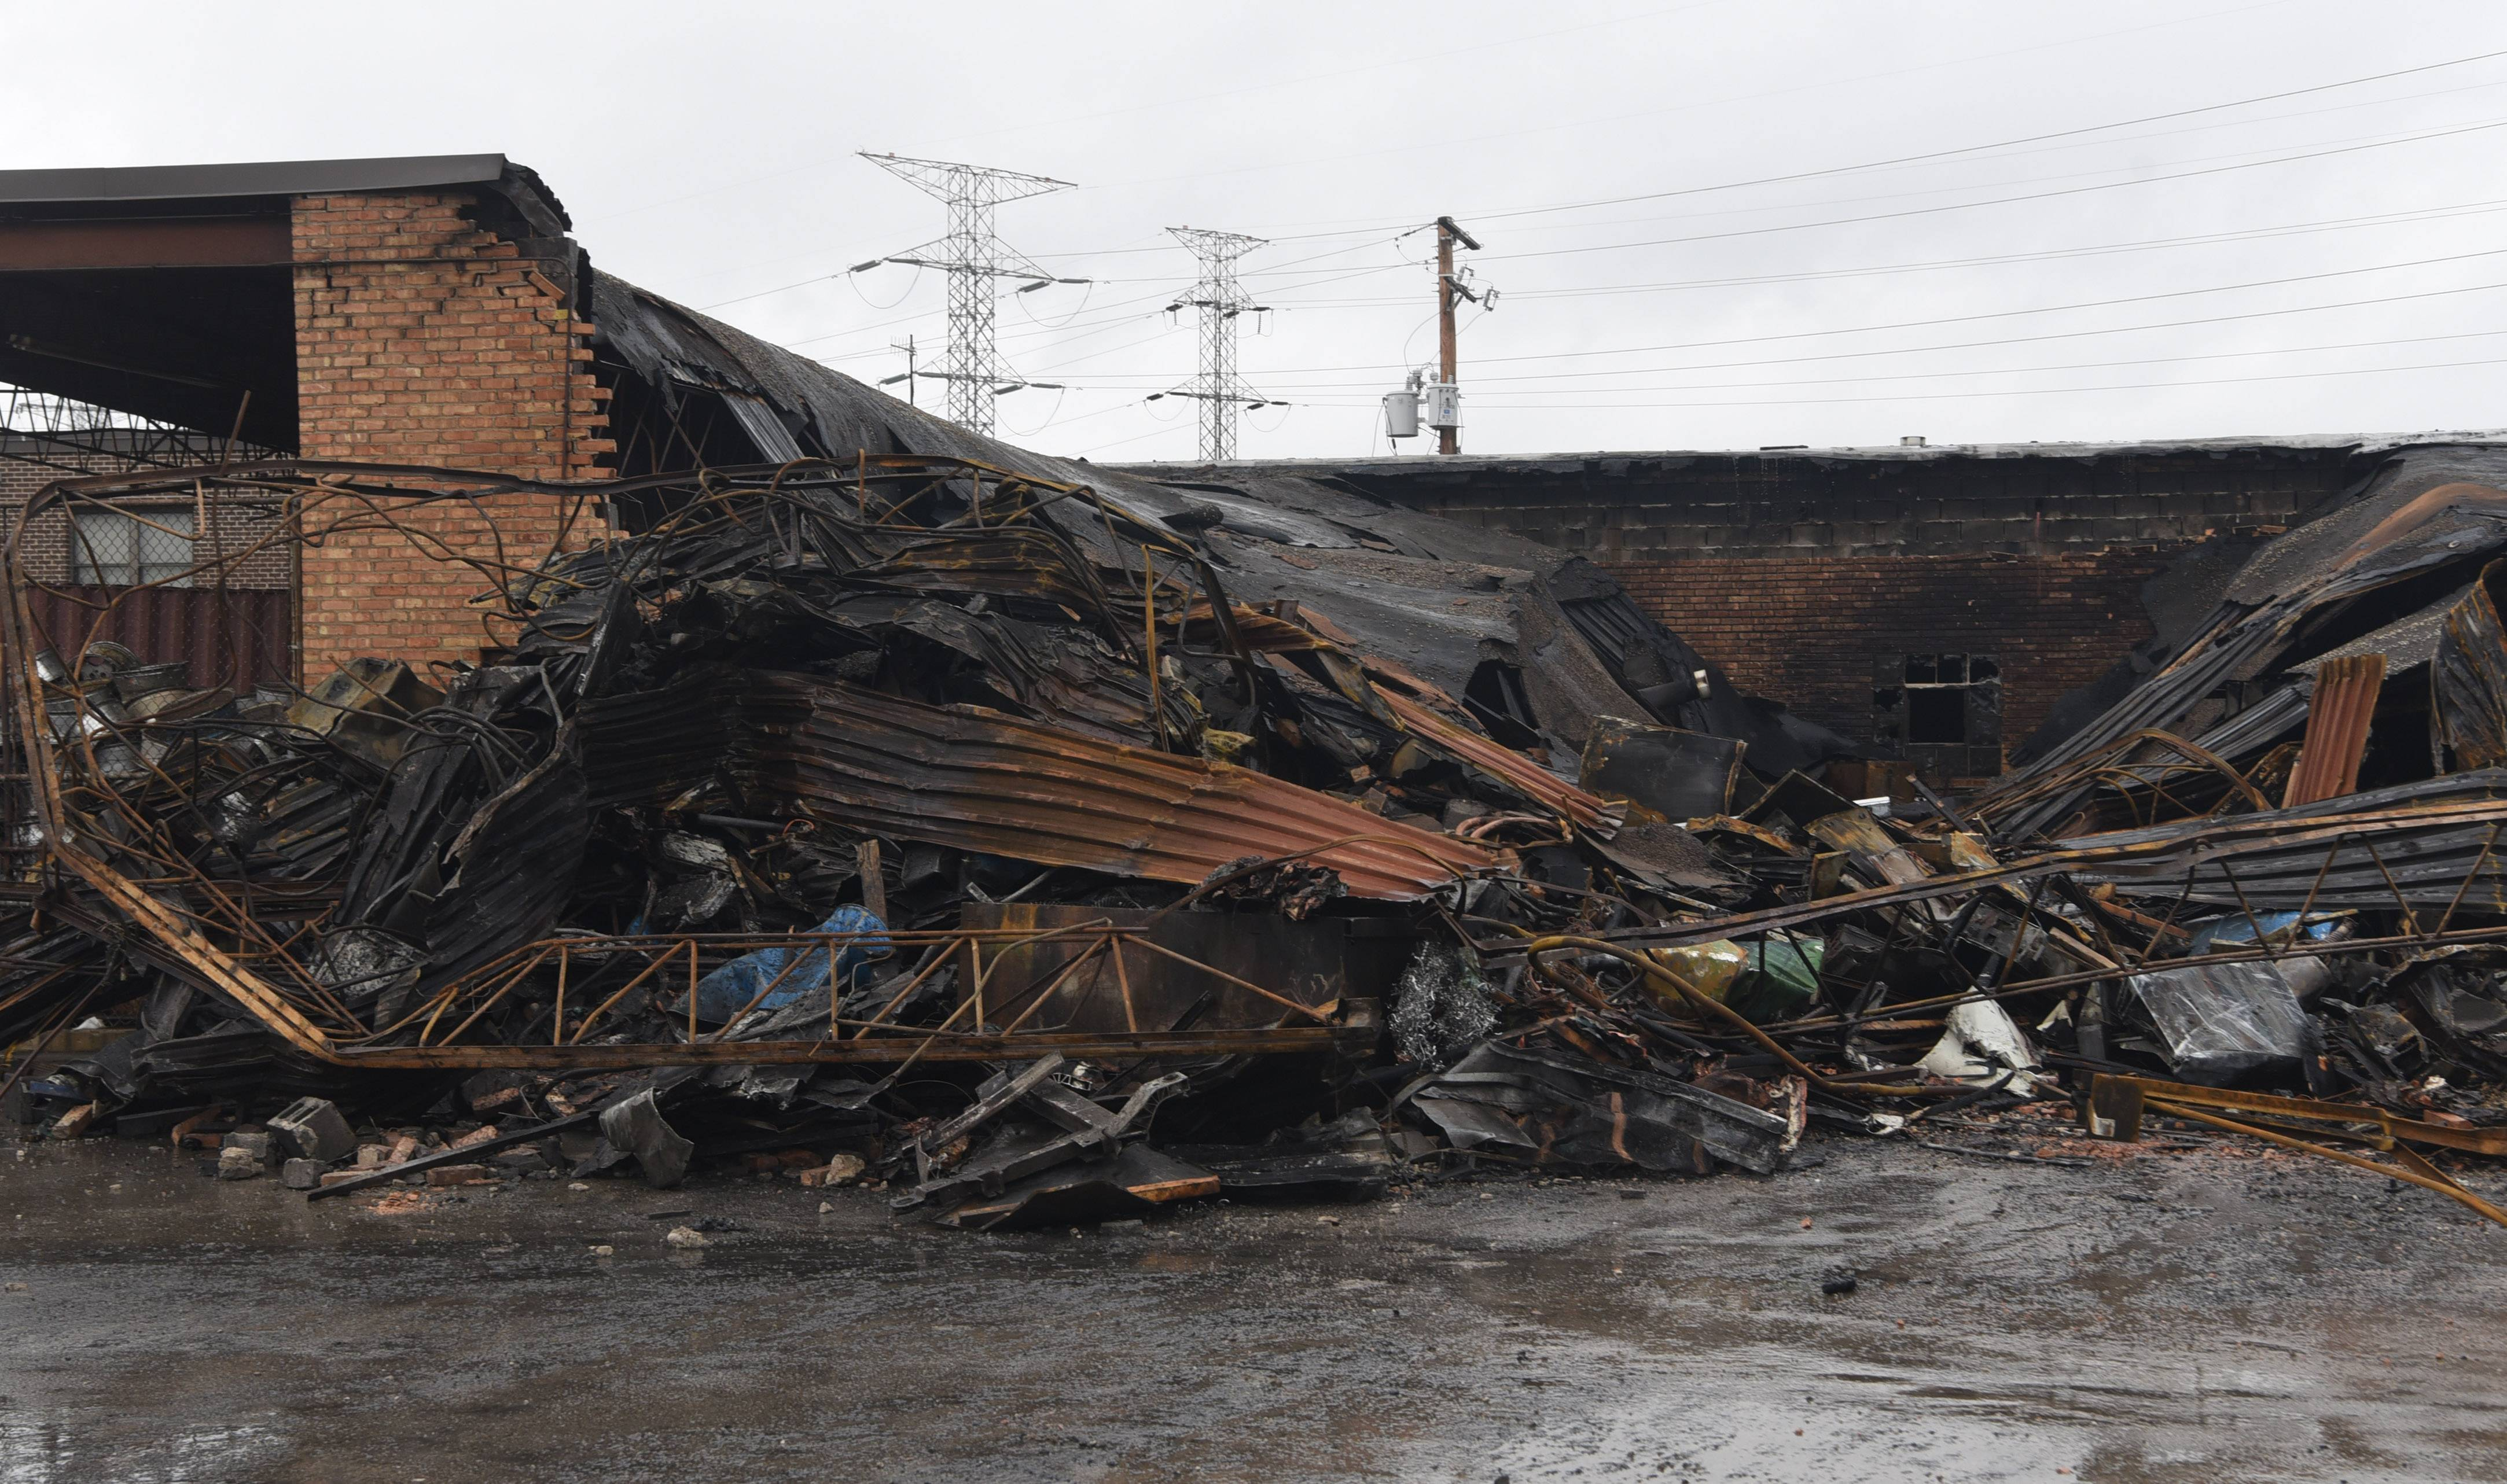 The rear 10,000-square-foot portion of a scrap metal recycling facility was destroyed by an overnight fire Thursday in Des Plaines.